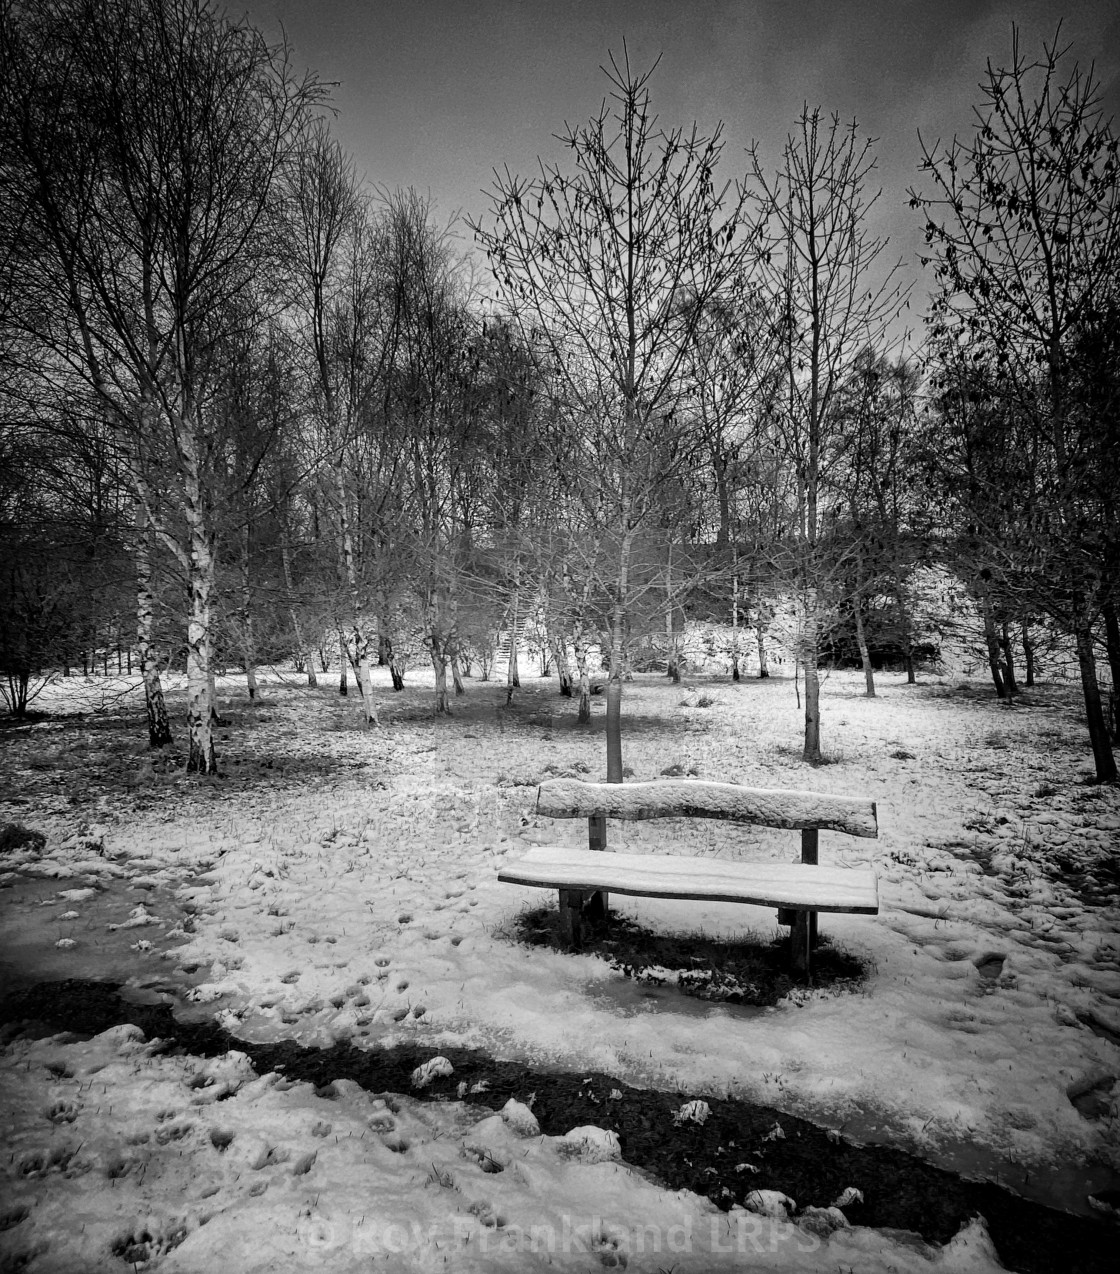 """""""Park bench covered in snow, mono"""" stock image"""